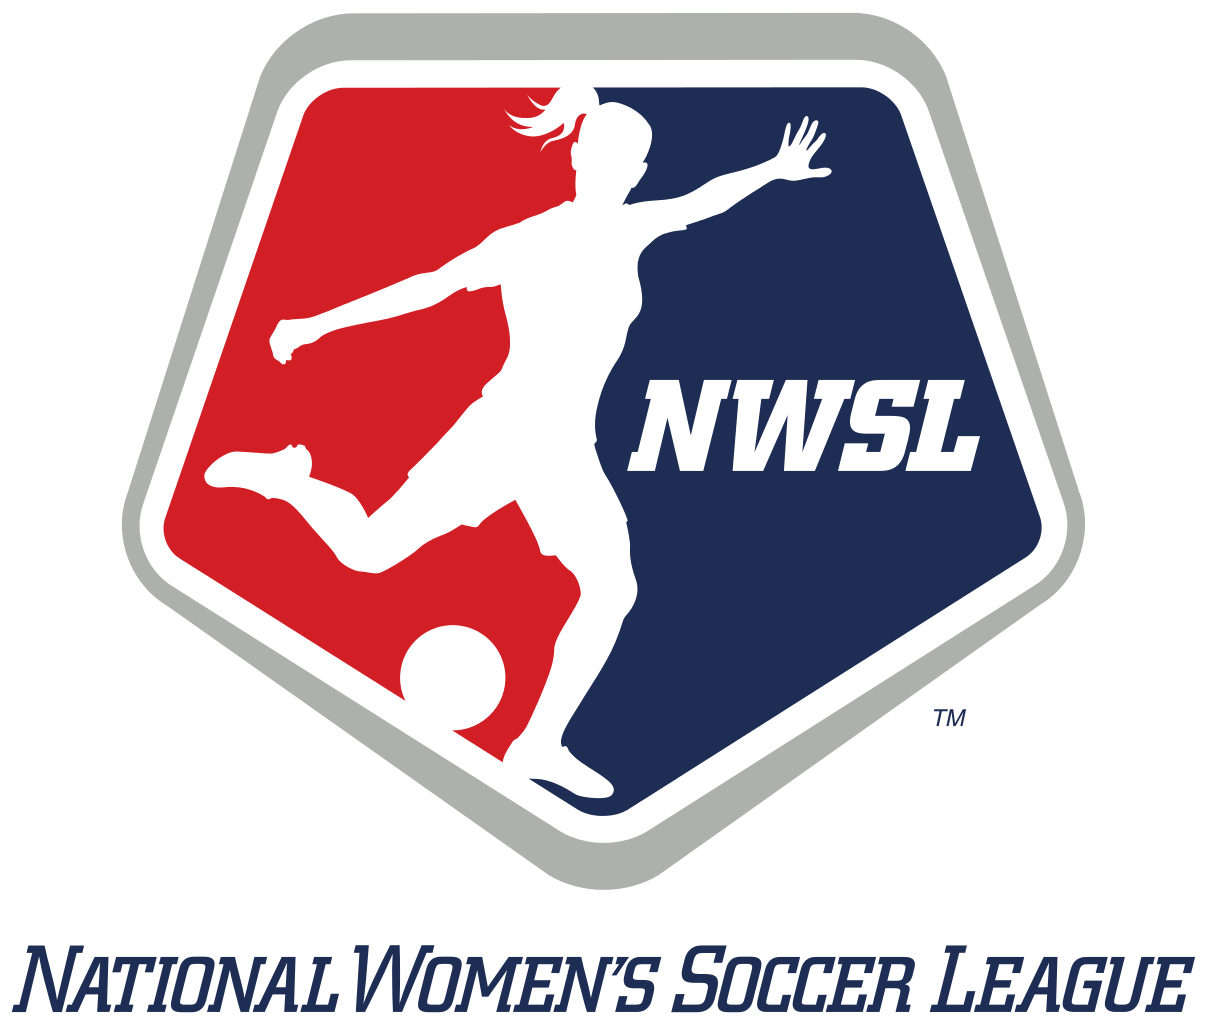 NWSL League Office